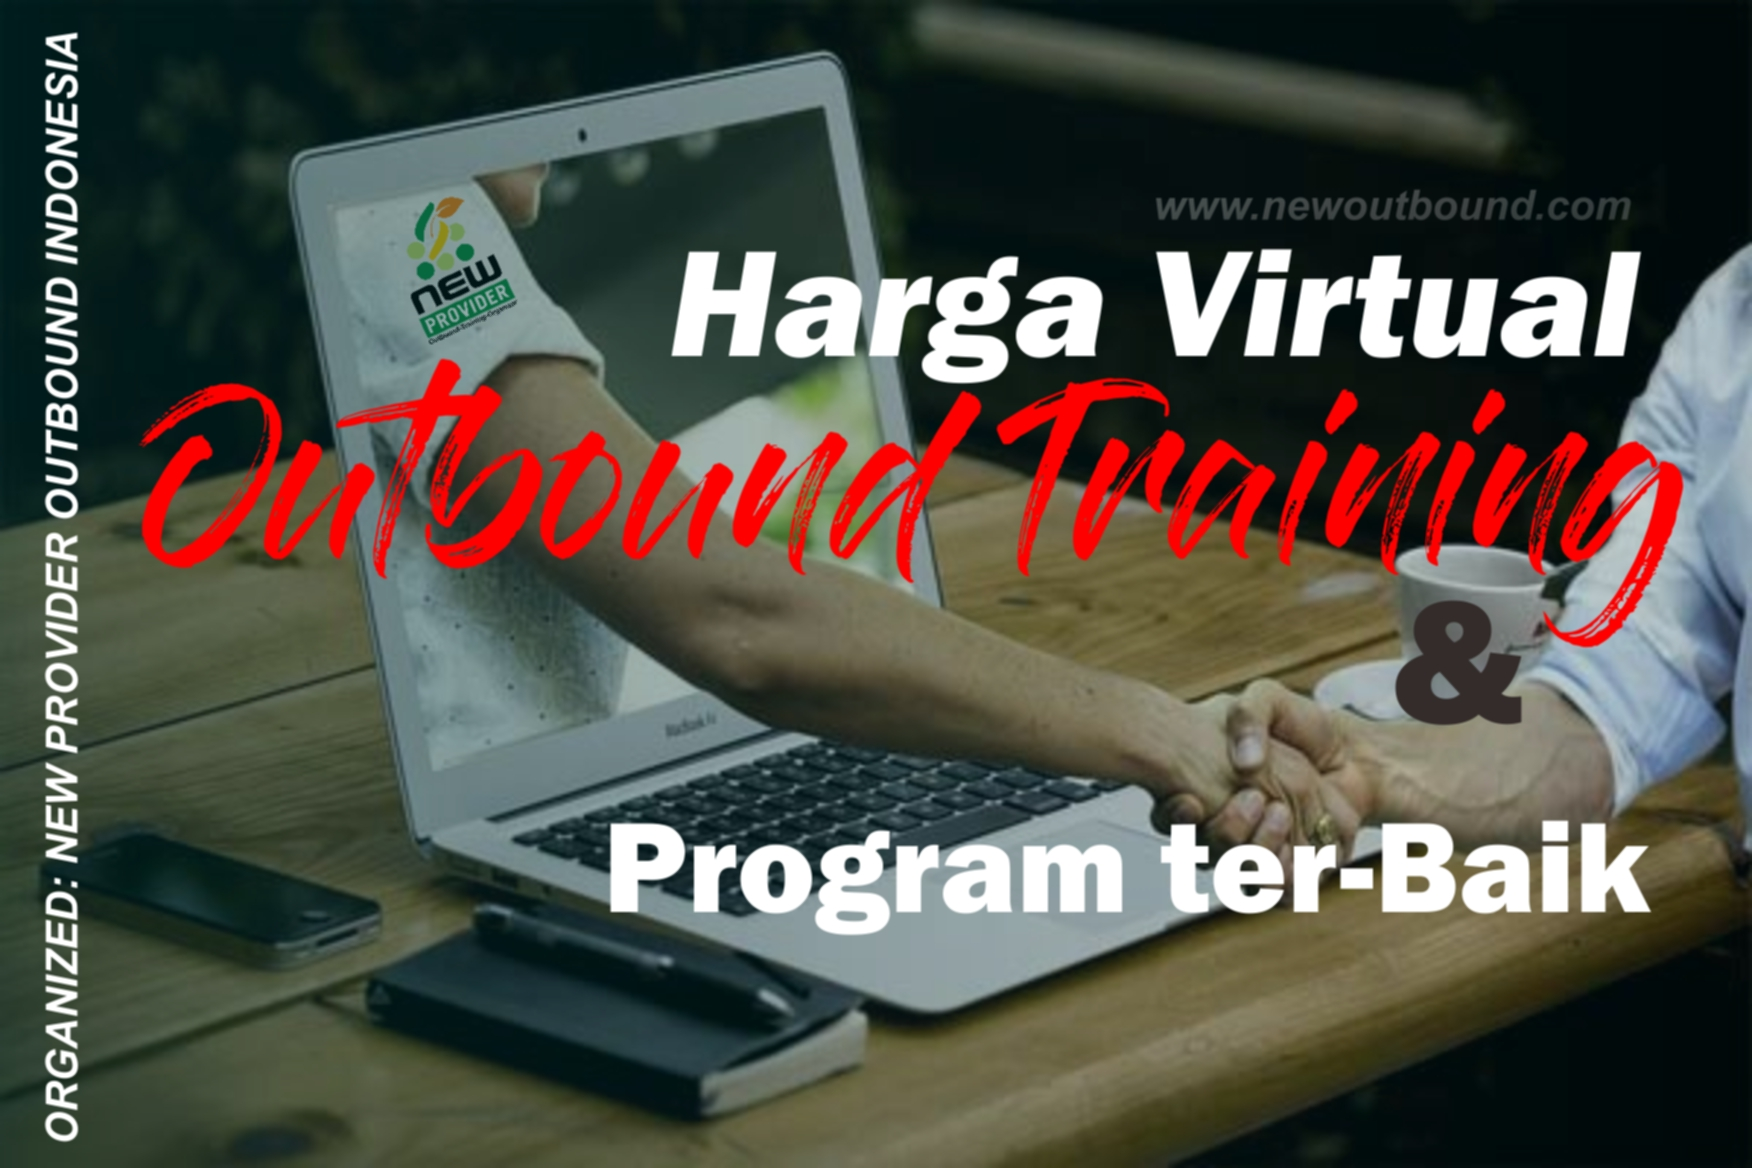 Harga Virtual Outbound